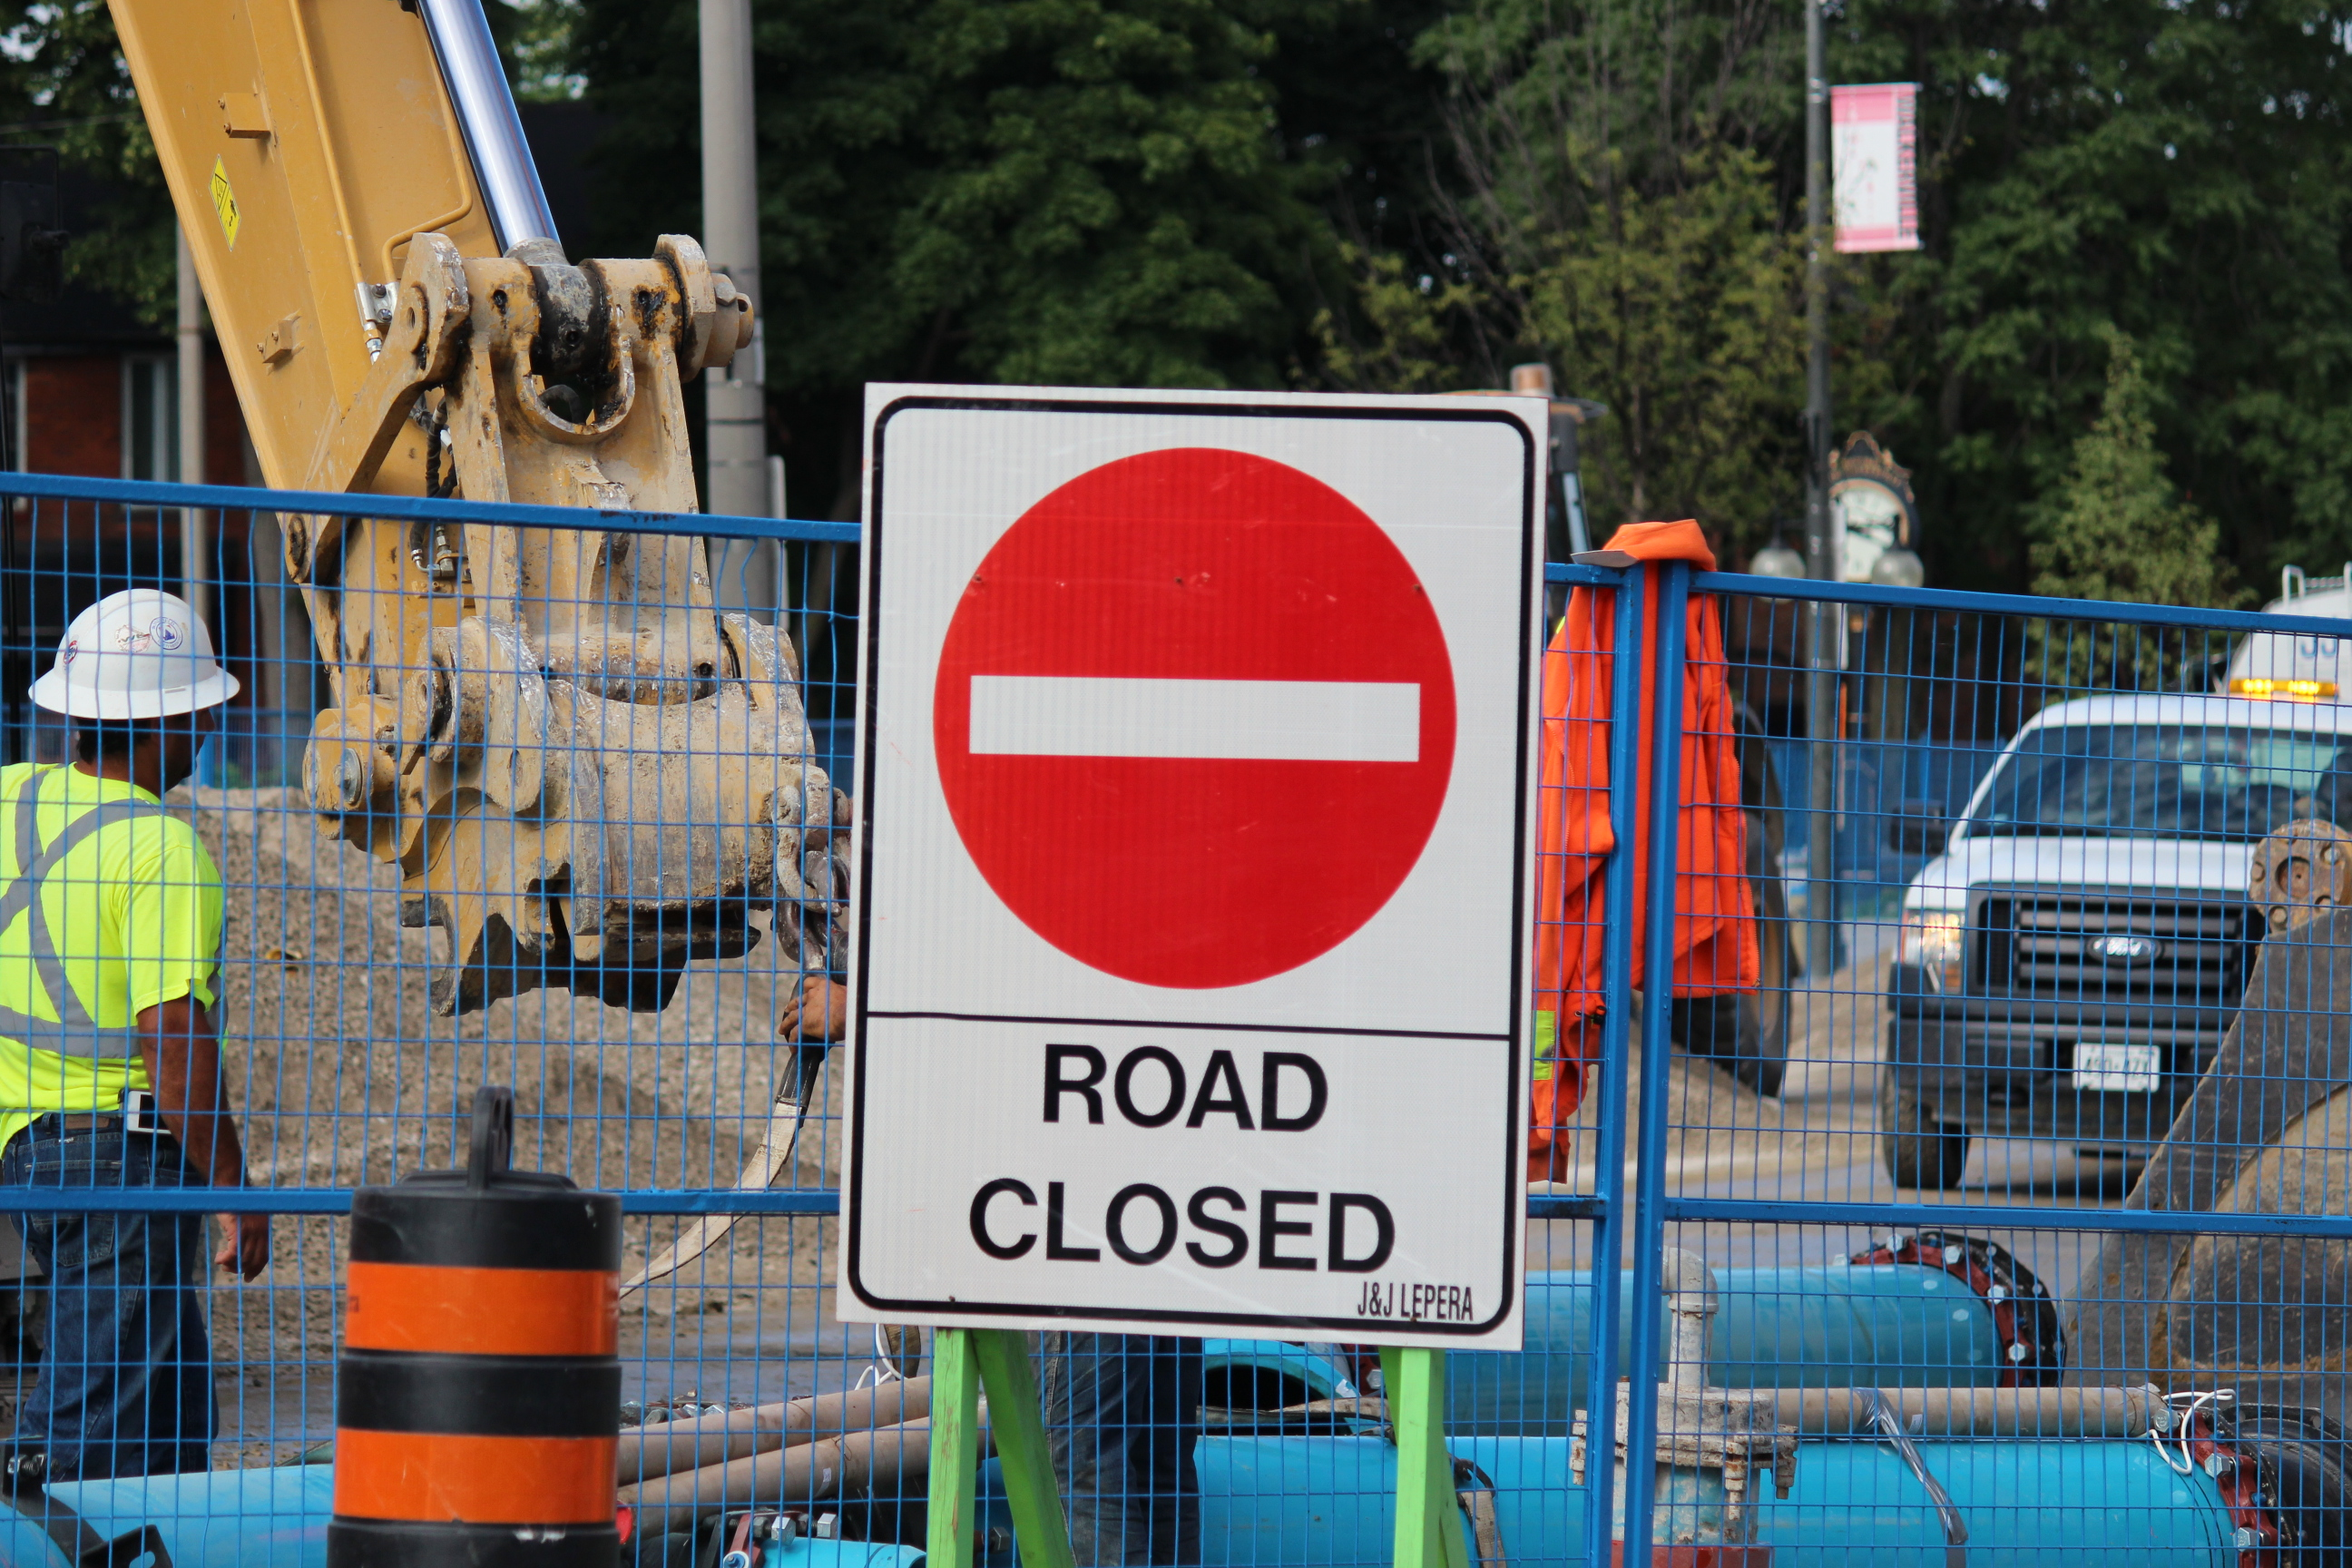 Wyandotte St. E. is closed between Devonshire Rd. and Gladstone Ave. (Photo by Adelle Loiselle.)